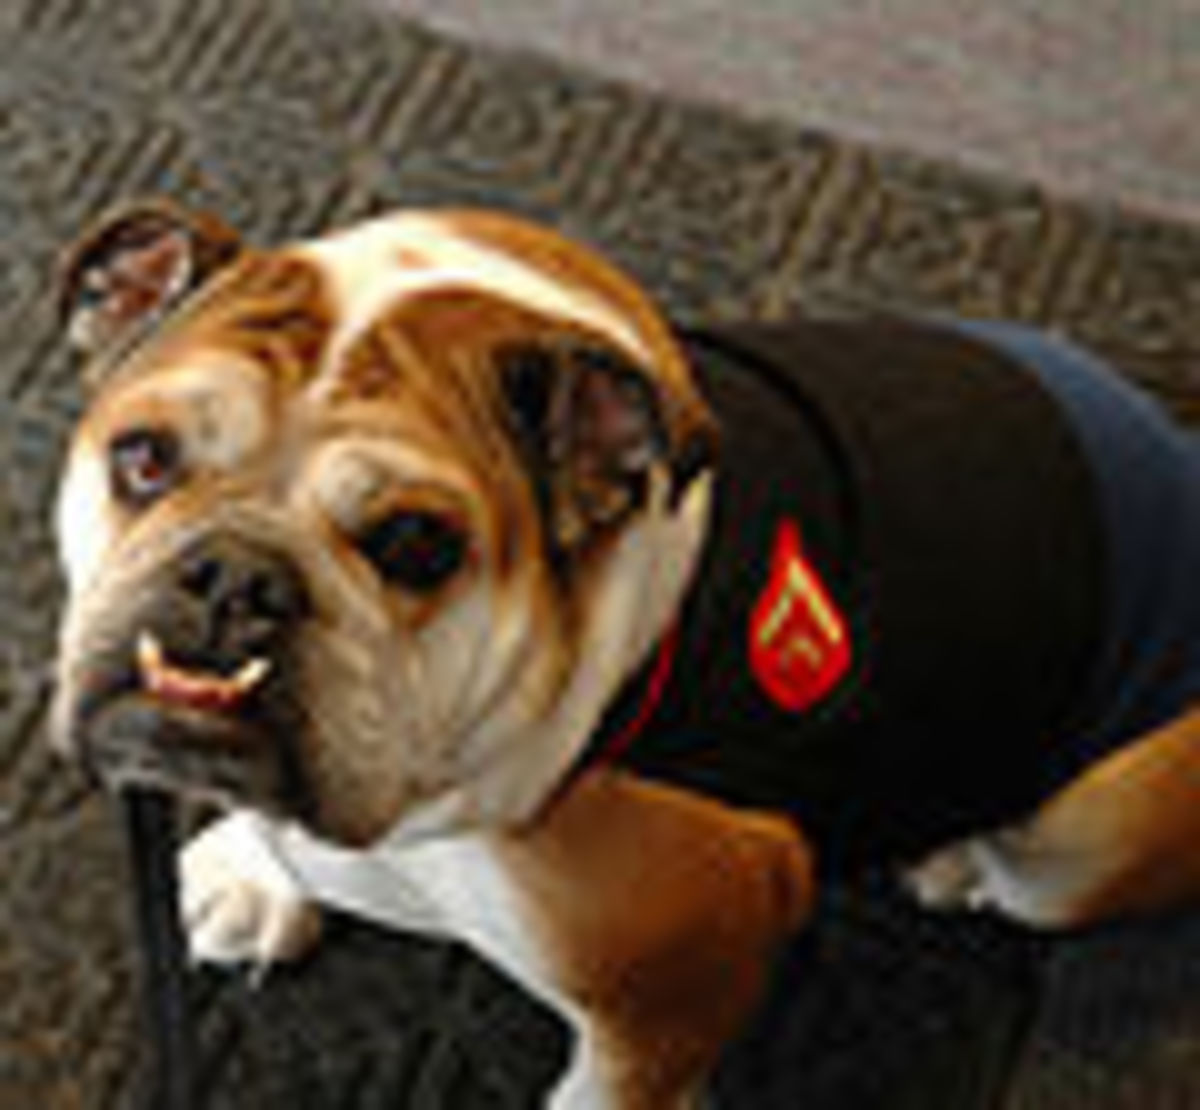 Mollyblues--Lance Corporal Molly Englsih bulldog mascot of the Marine corps recruit depot San diego